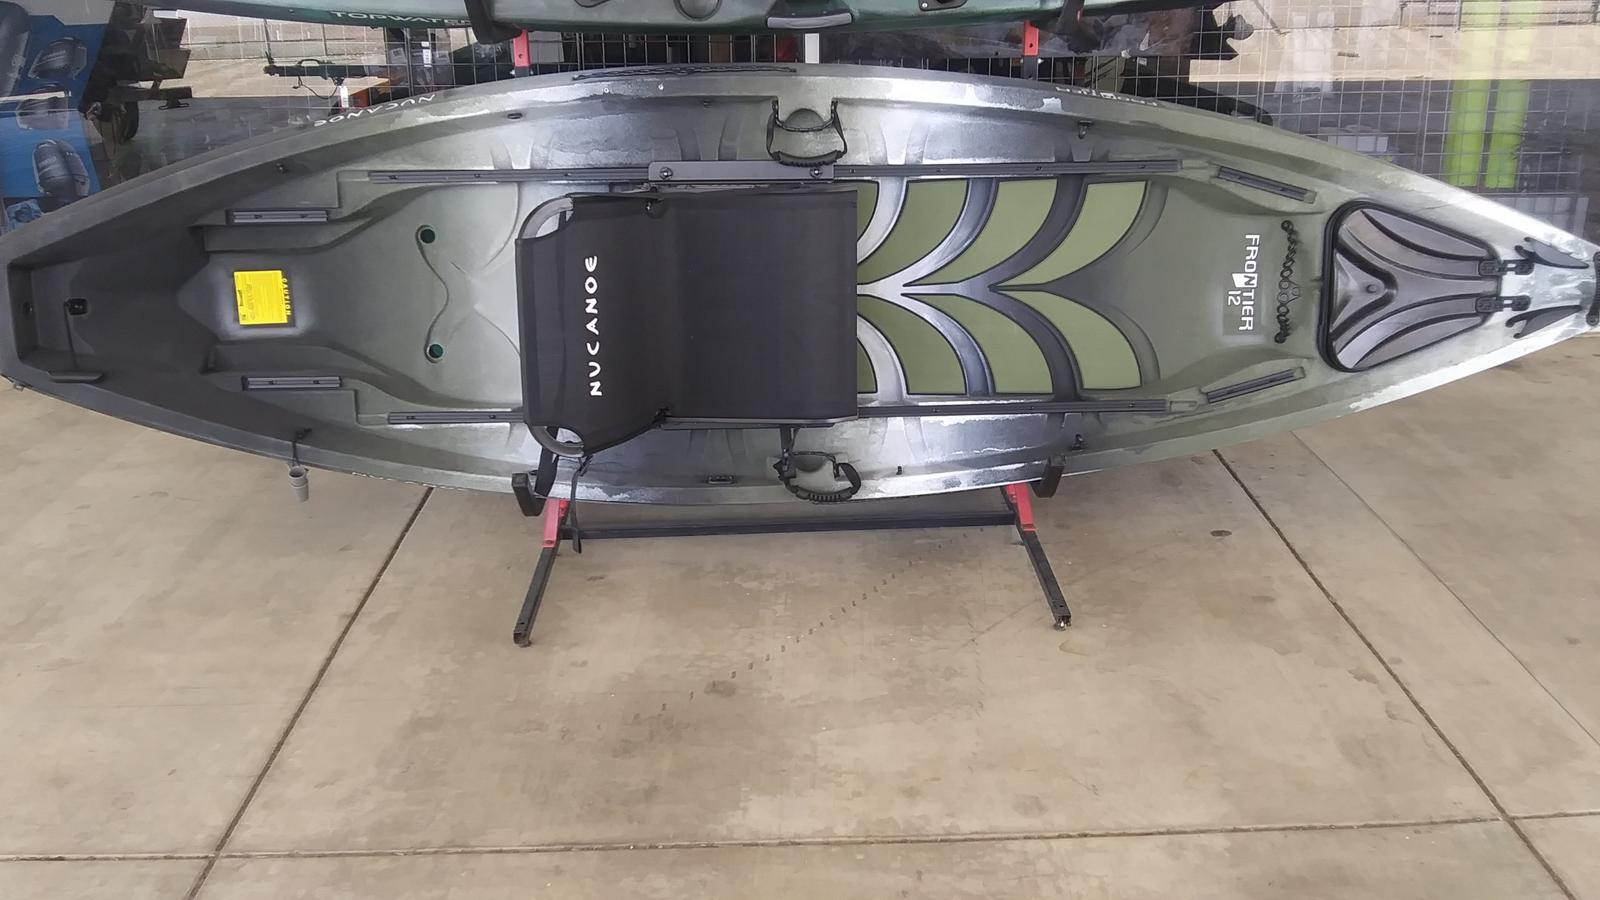 2021 NuCanoe boat for sale, model of the boat is Frontier 12 & Image # 1 of 2